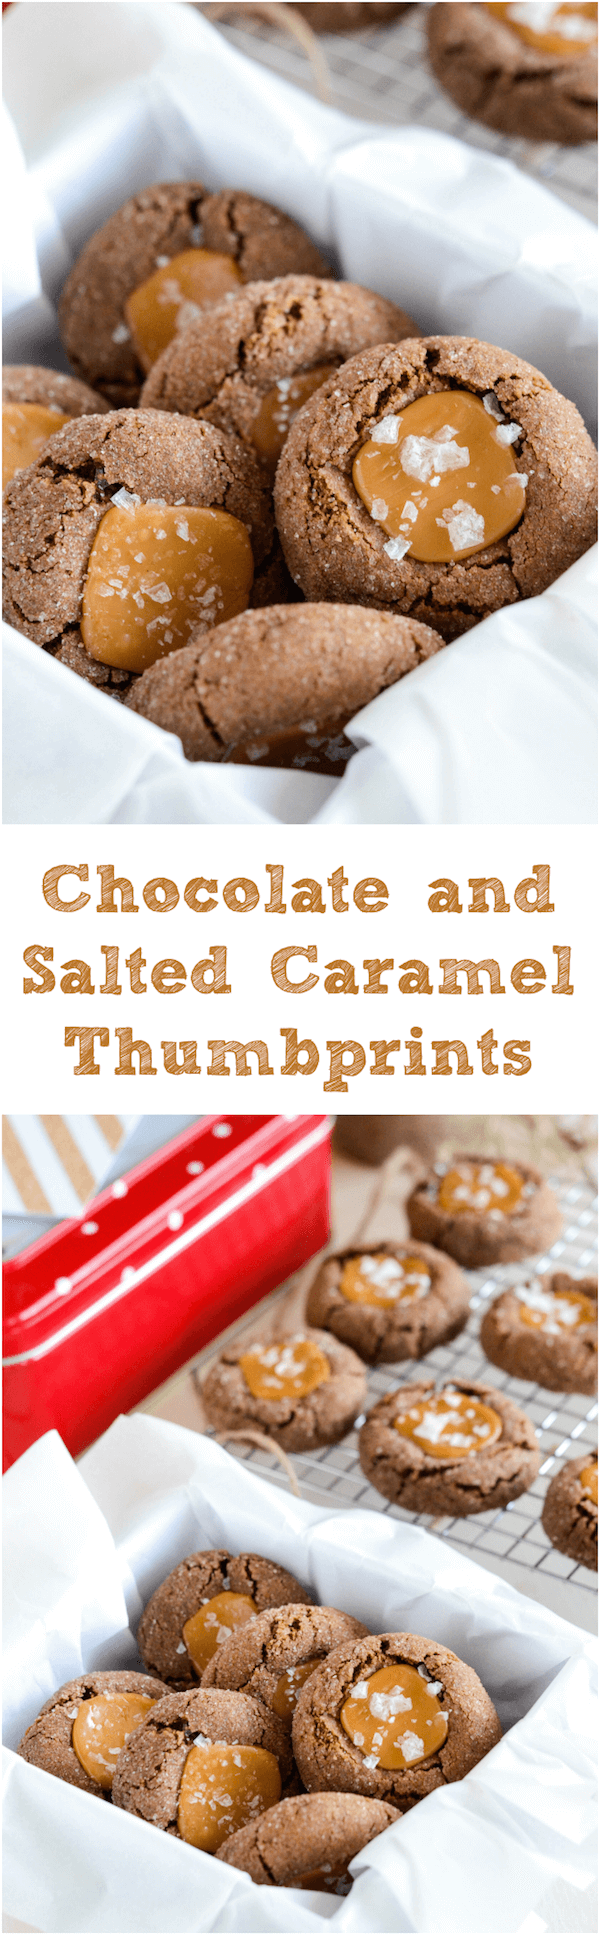 Chocolate and Salted Caramel Thumbprint Cookies – The Novice Chef